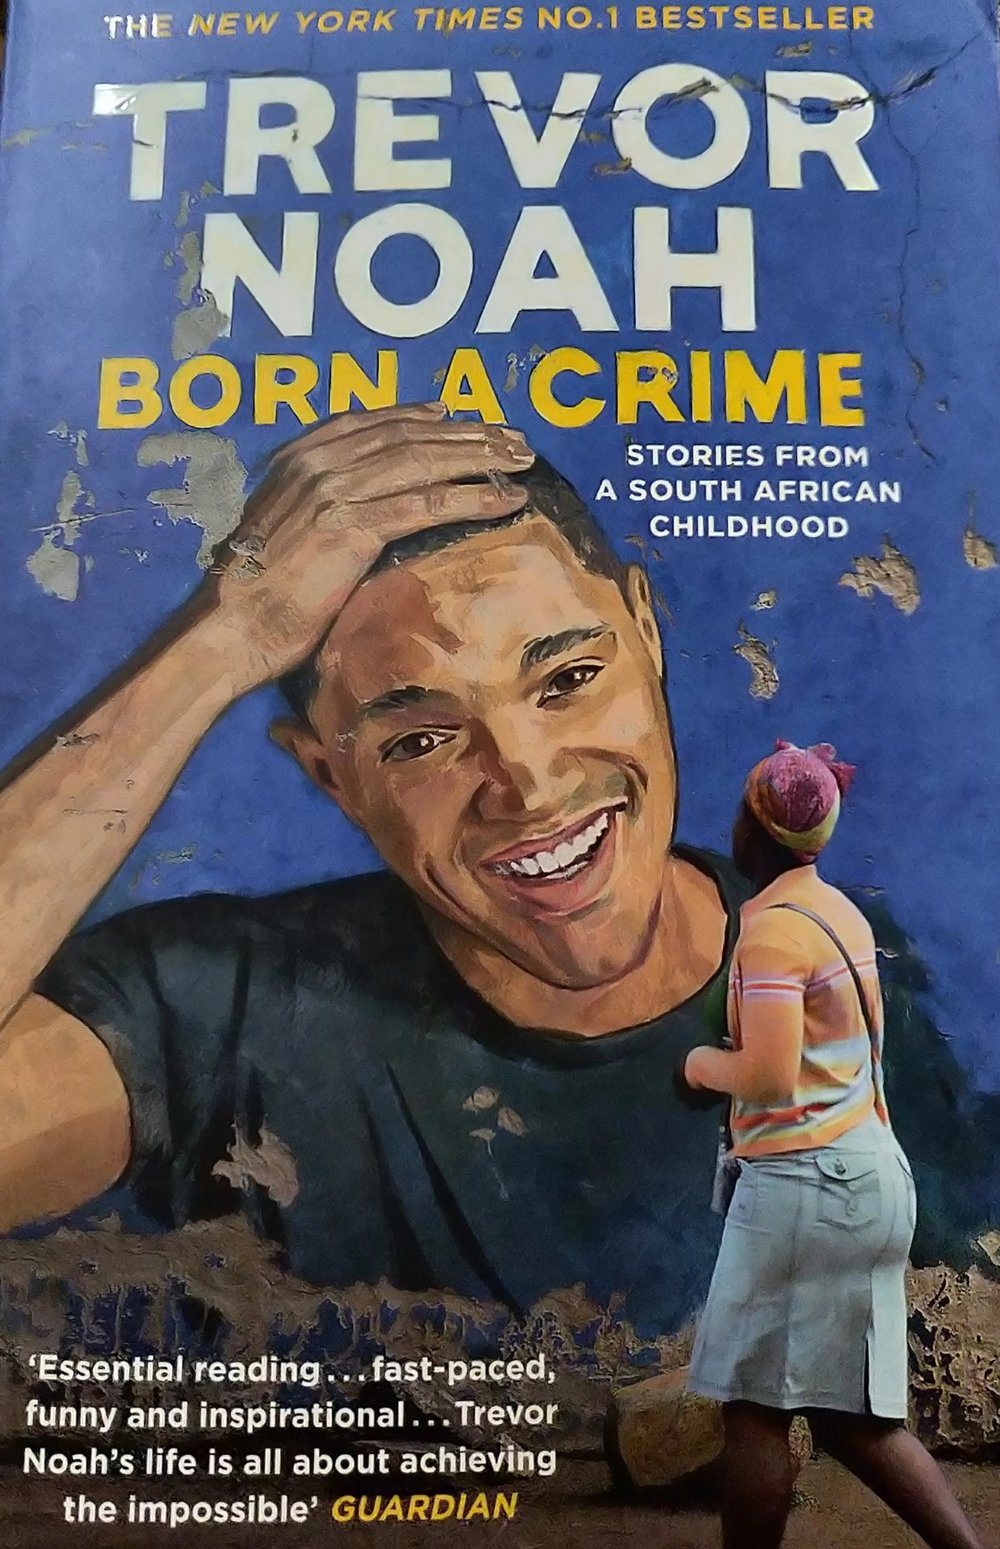 born a crime book cover large.jpg